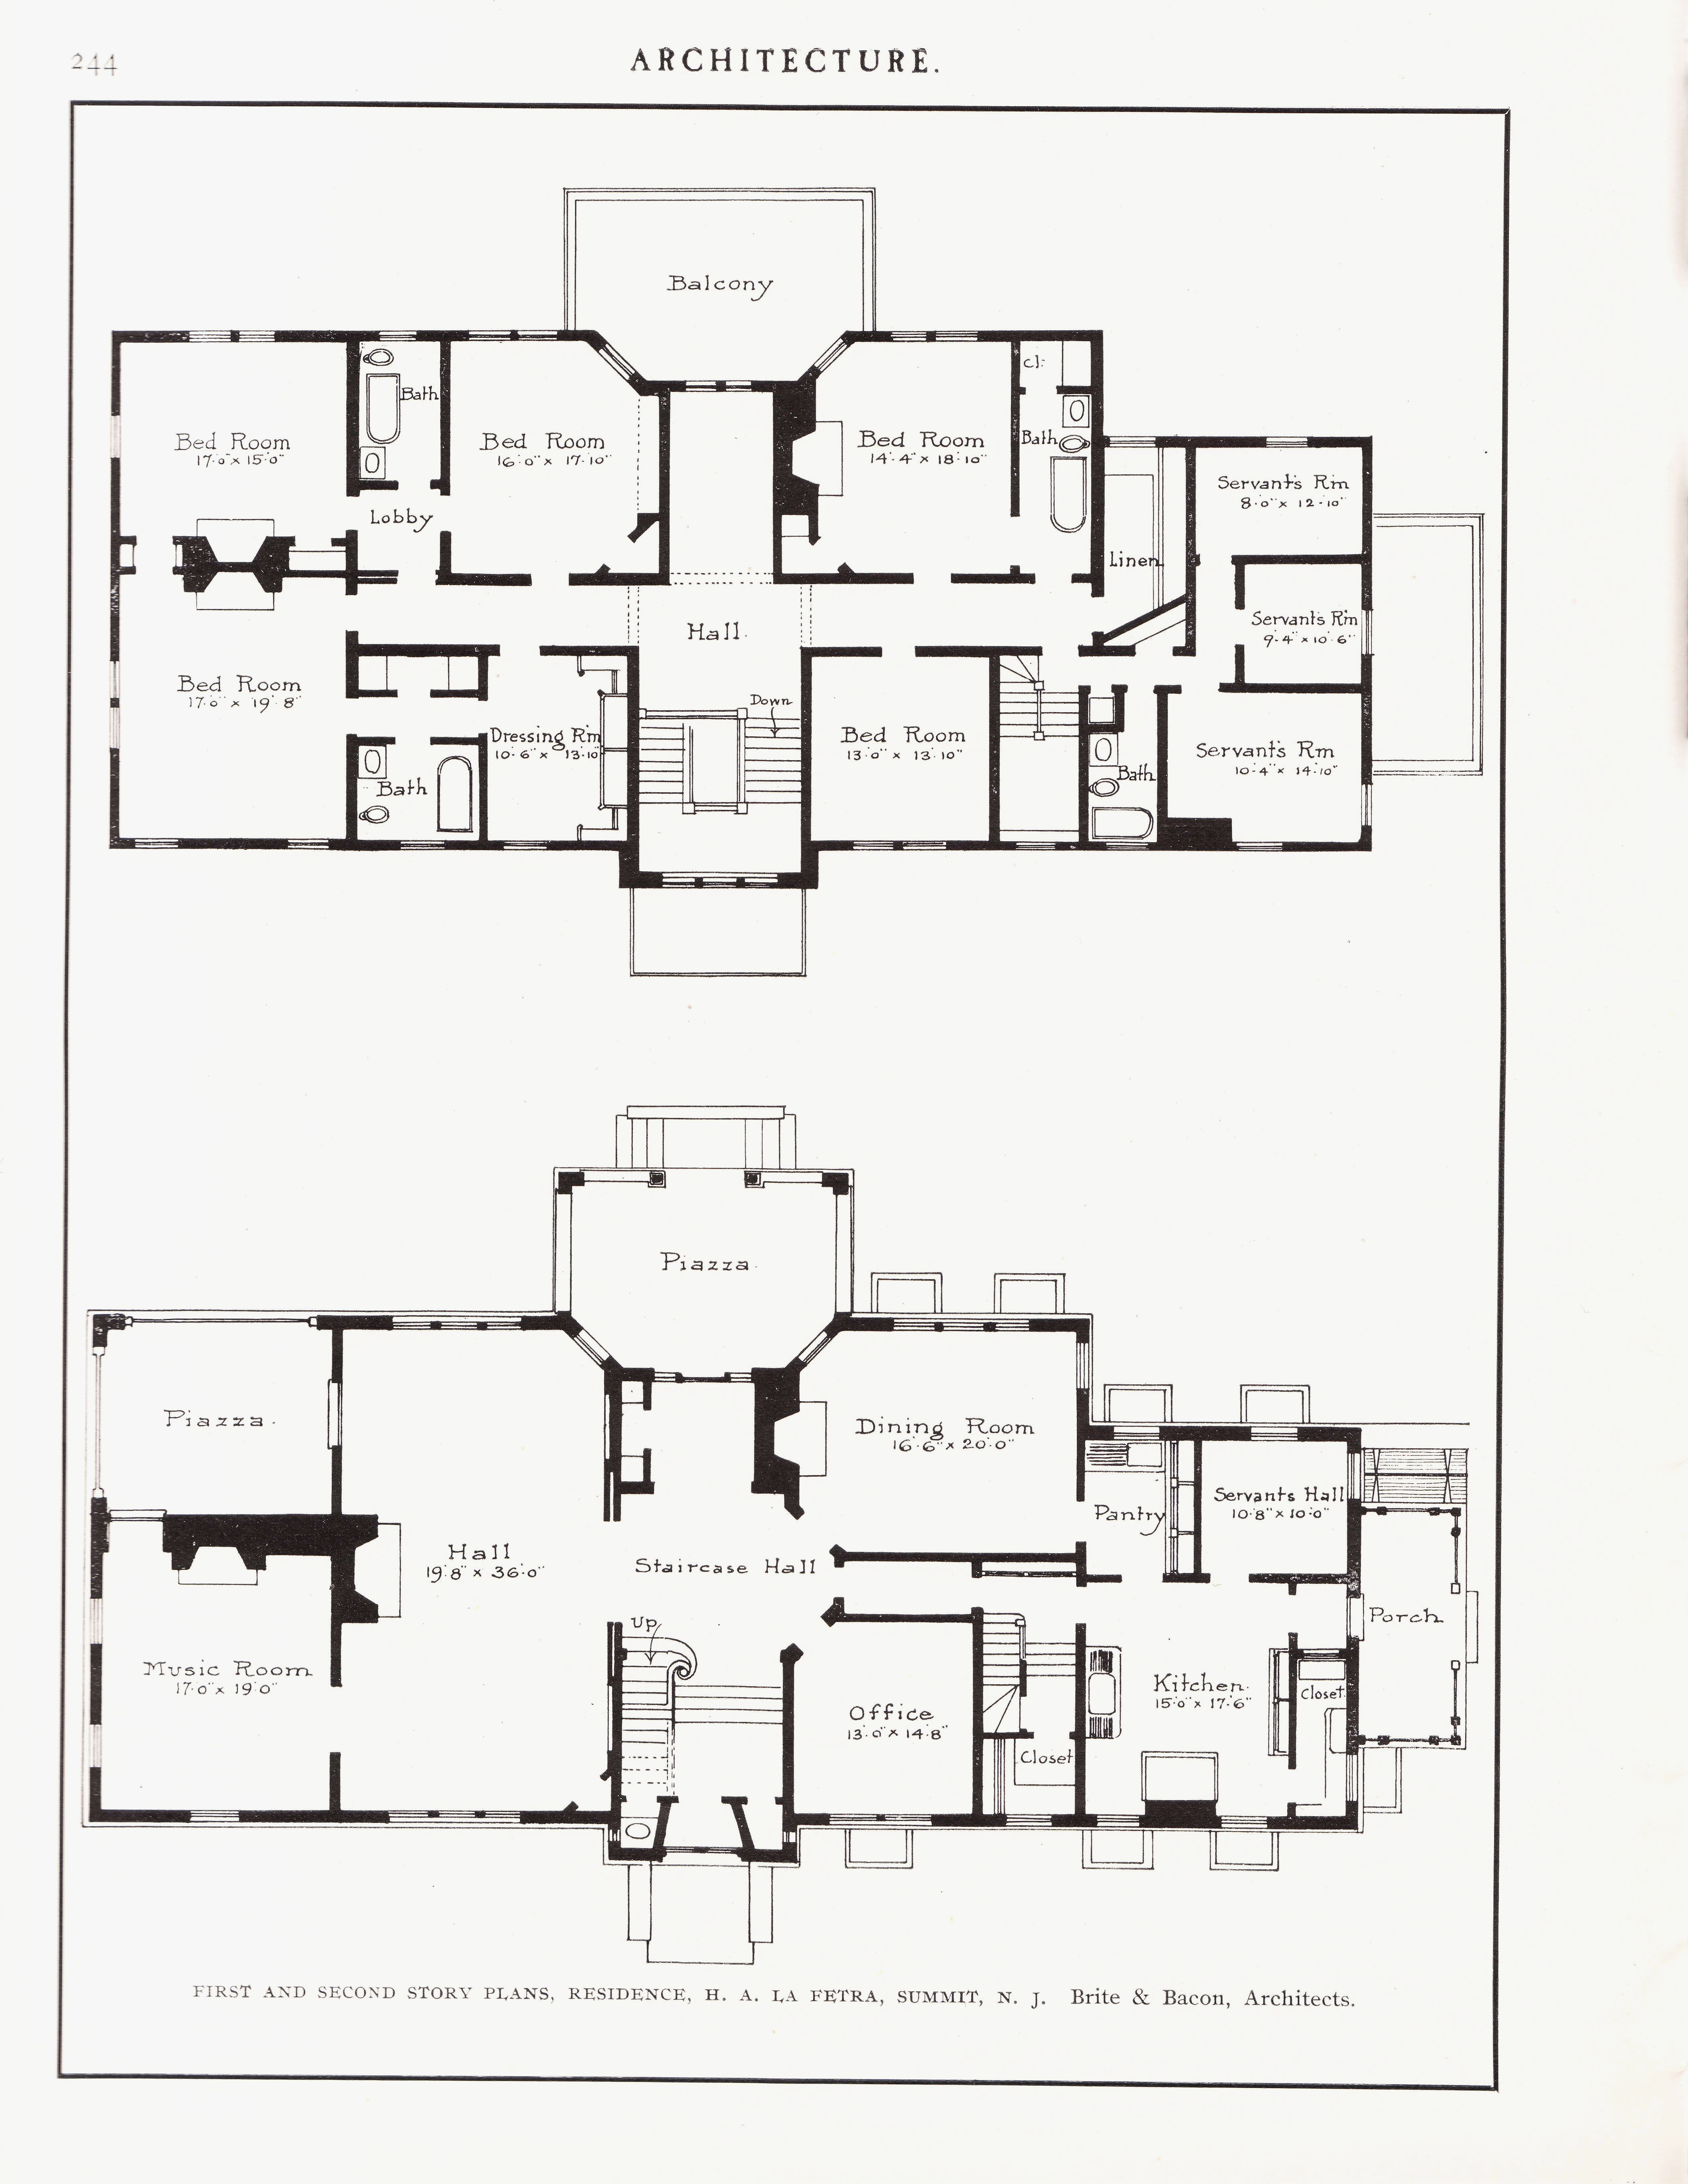 Free House Plans software Download Luxury 53 Unique 3d House Plan Drawing software Free Download